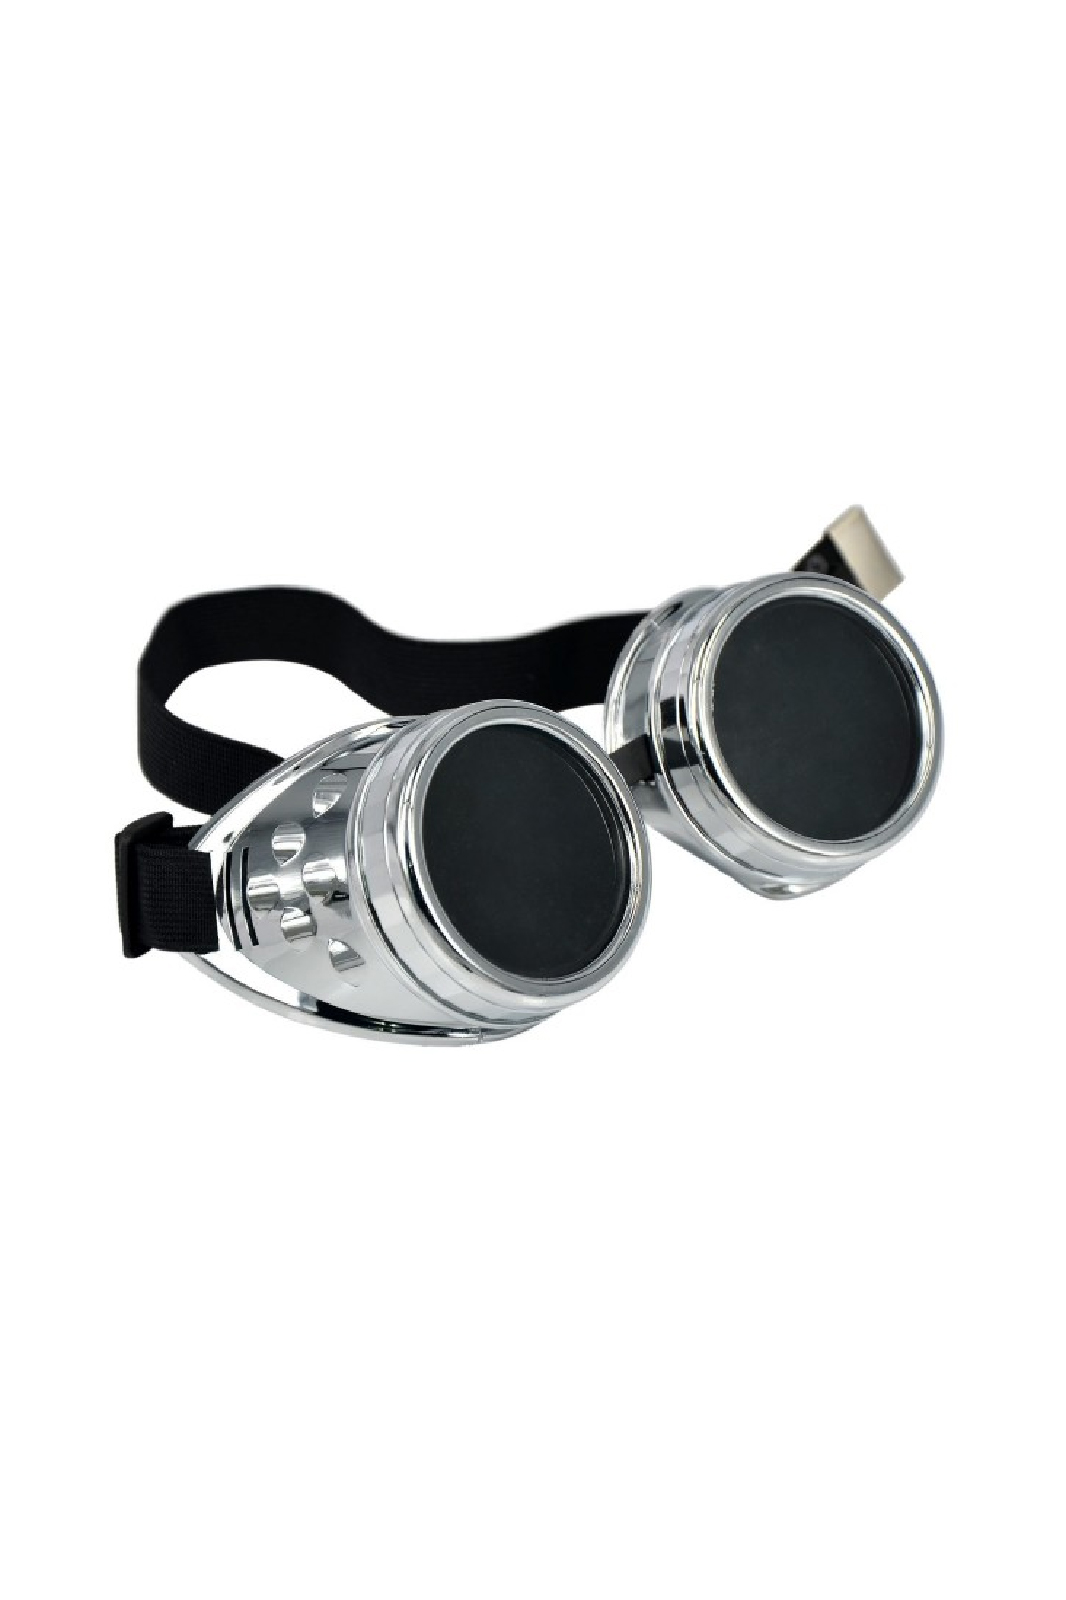 Sp Goggles Rivet Crome Black Lens